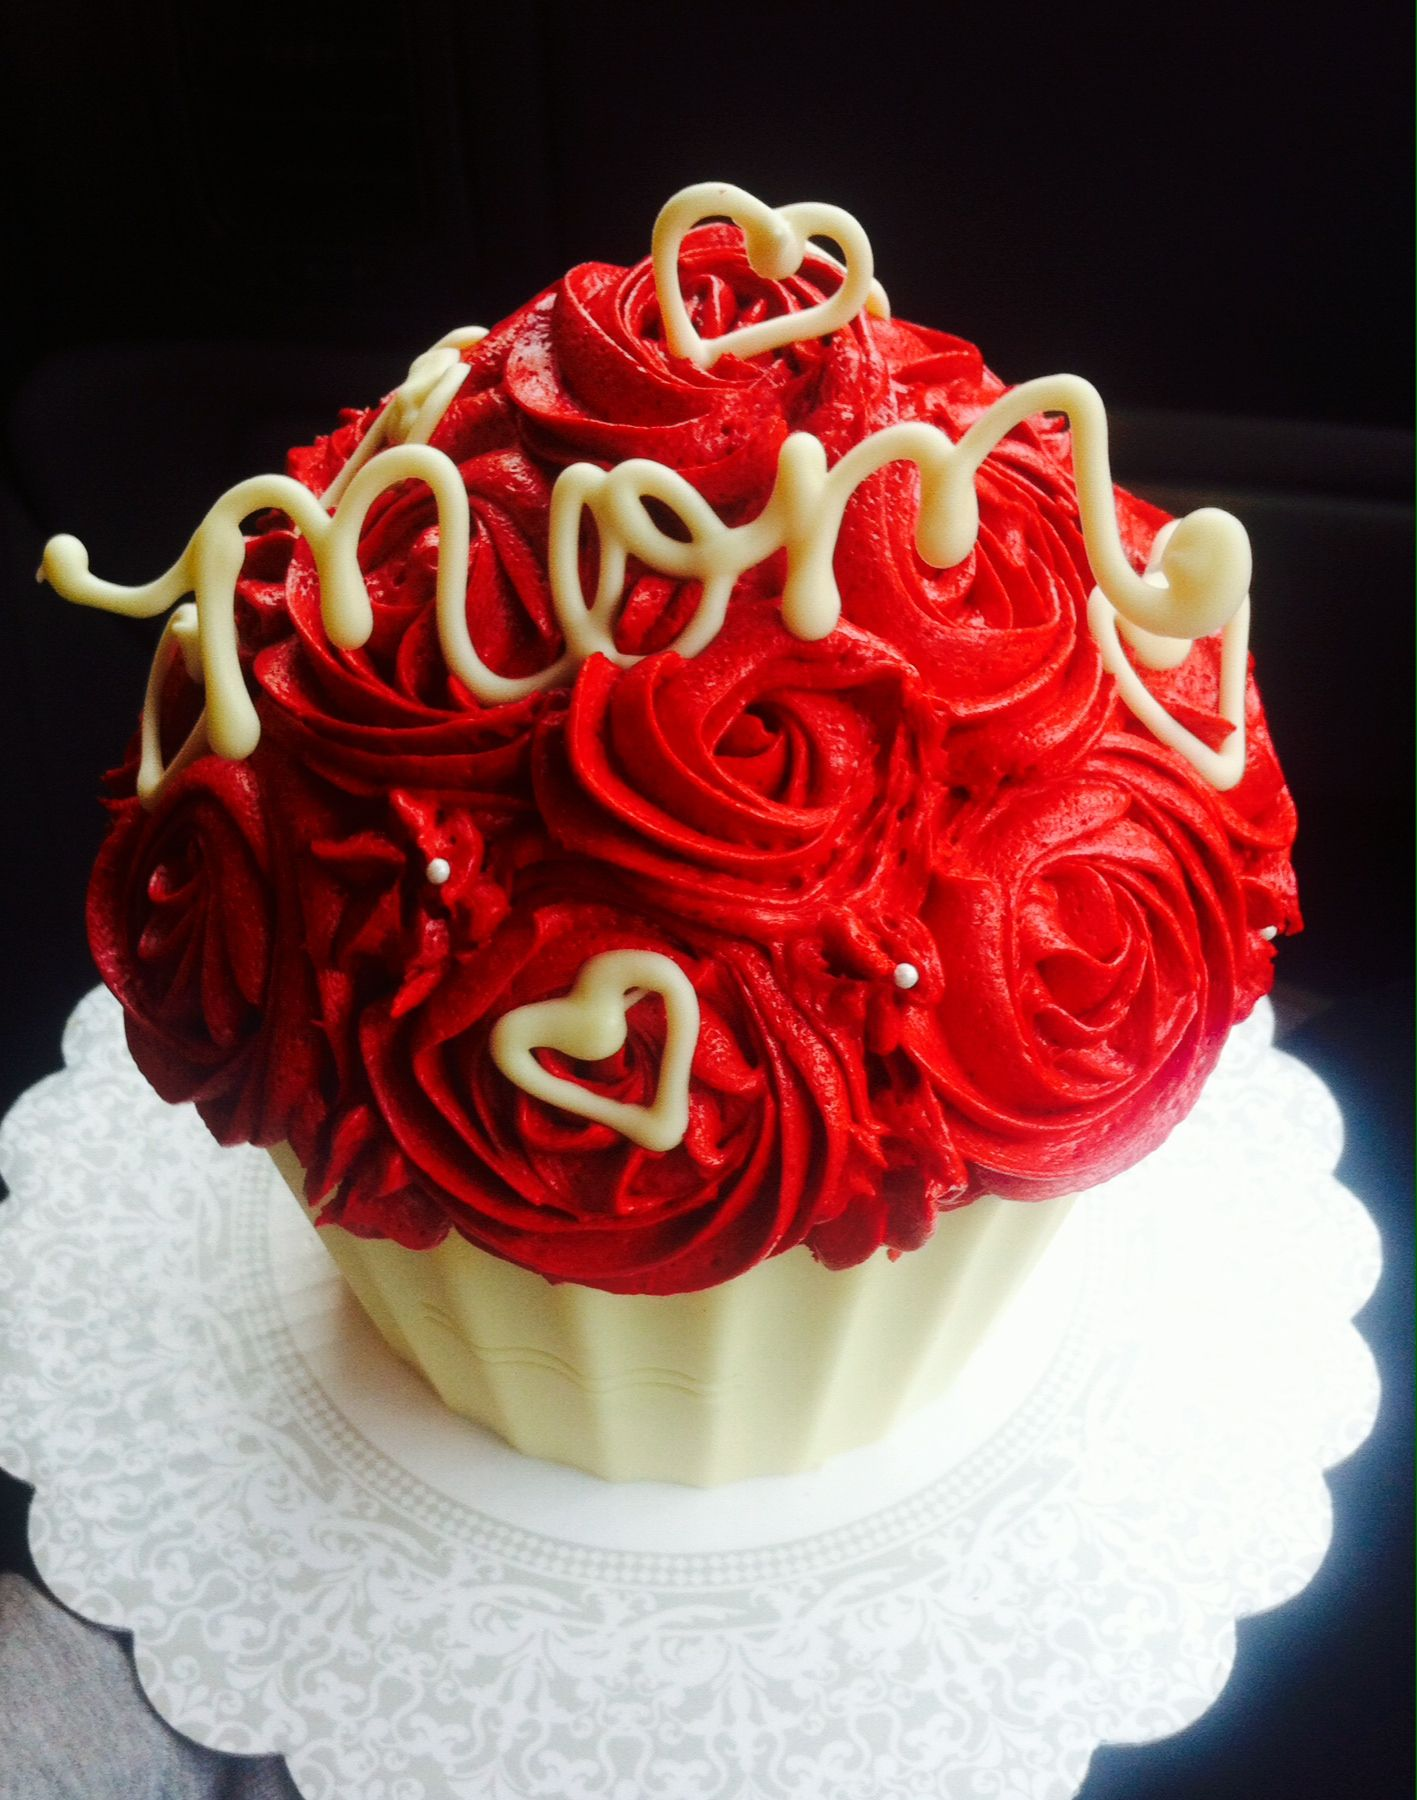 Giant Red Velvet Cupcake Buttercream Frosting White